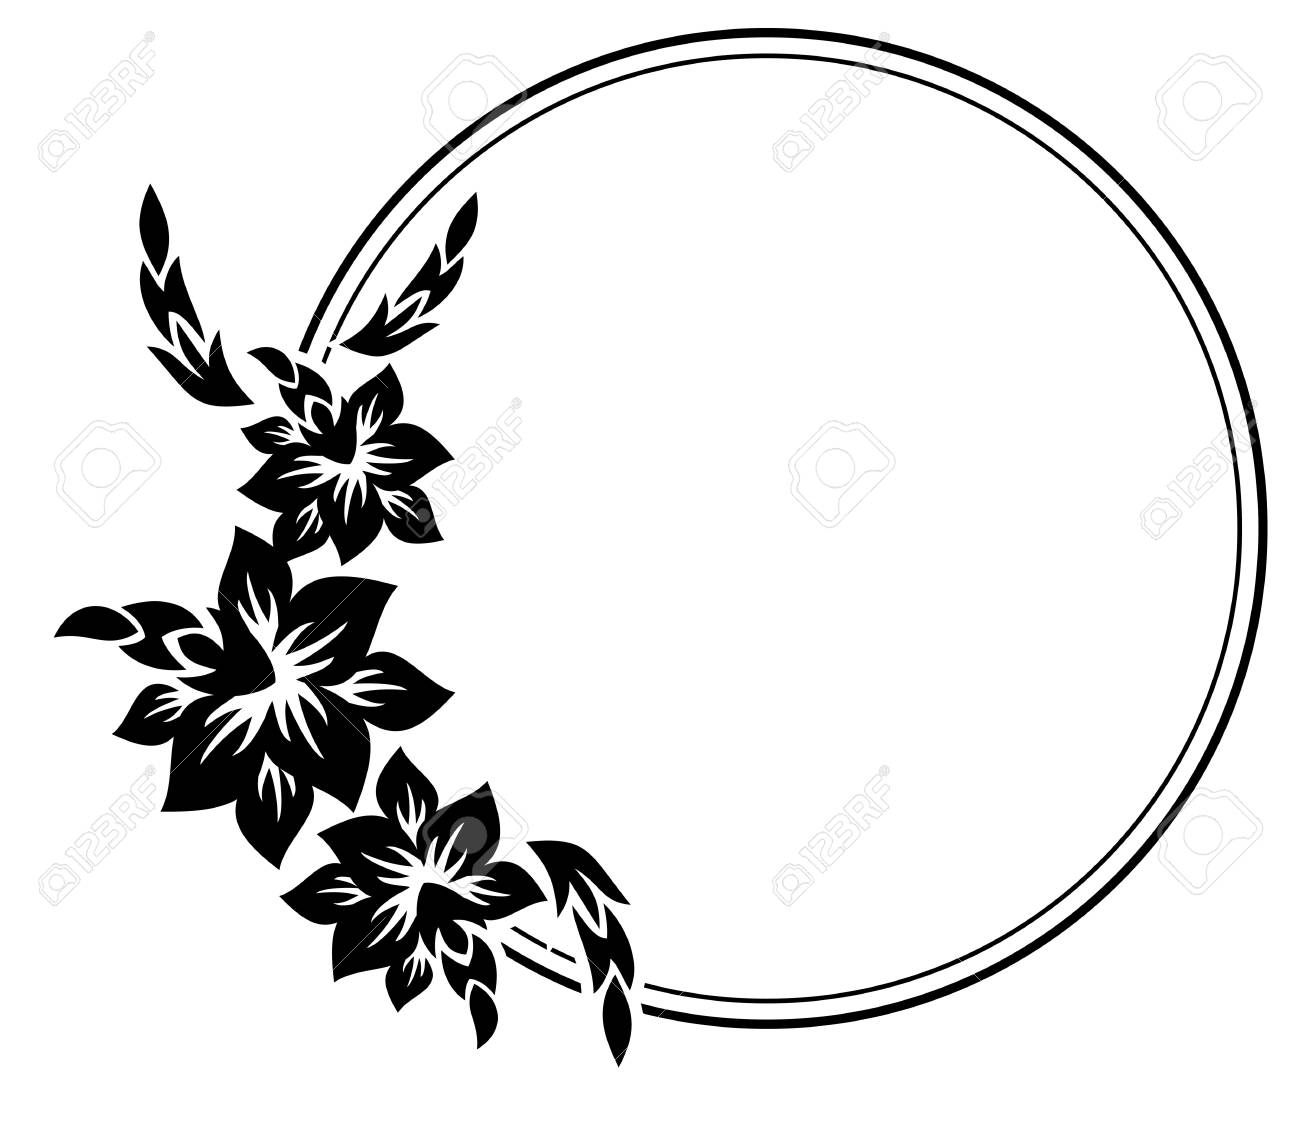 black and white silhouette round frame with decorative flowers rh 123rf com Decorative Line Clip Art decorative flower clipart vector